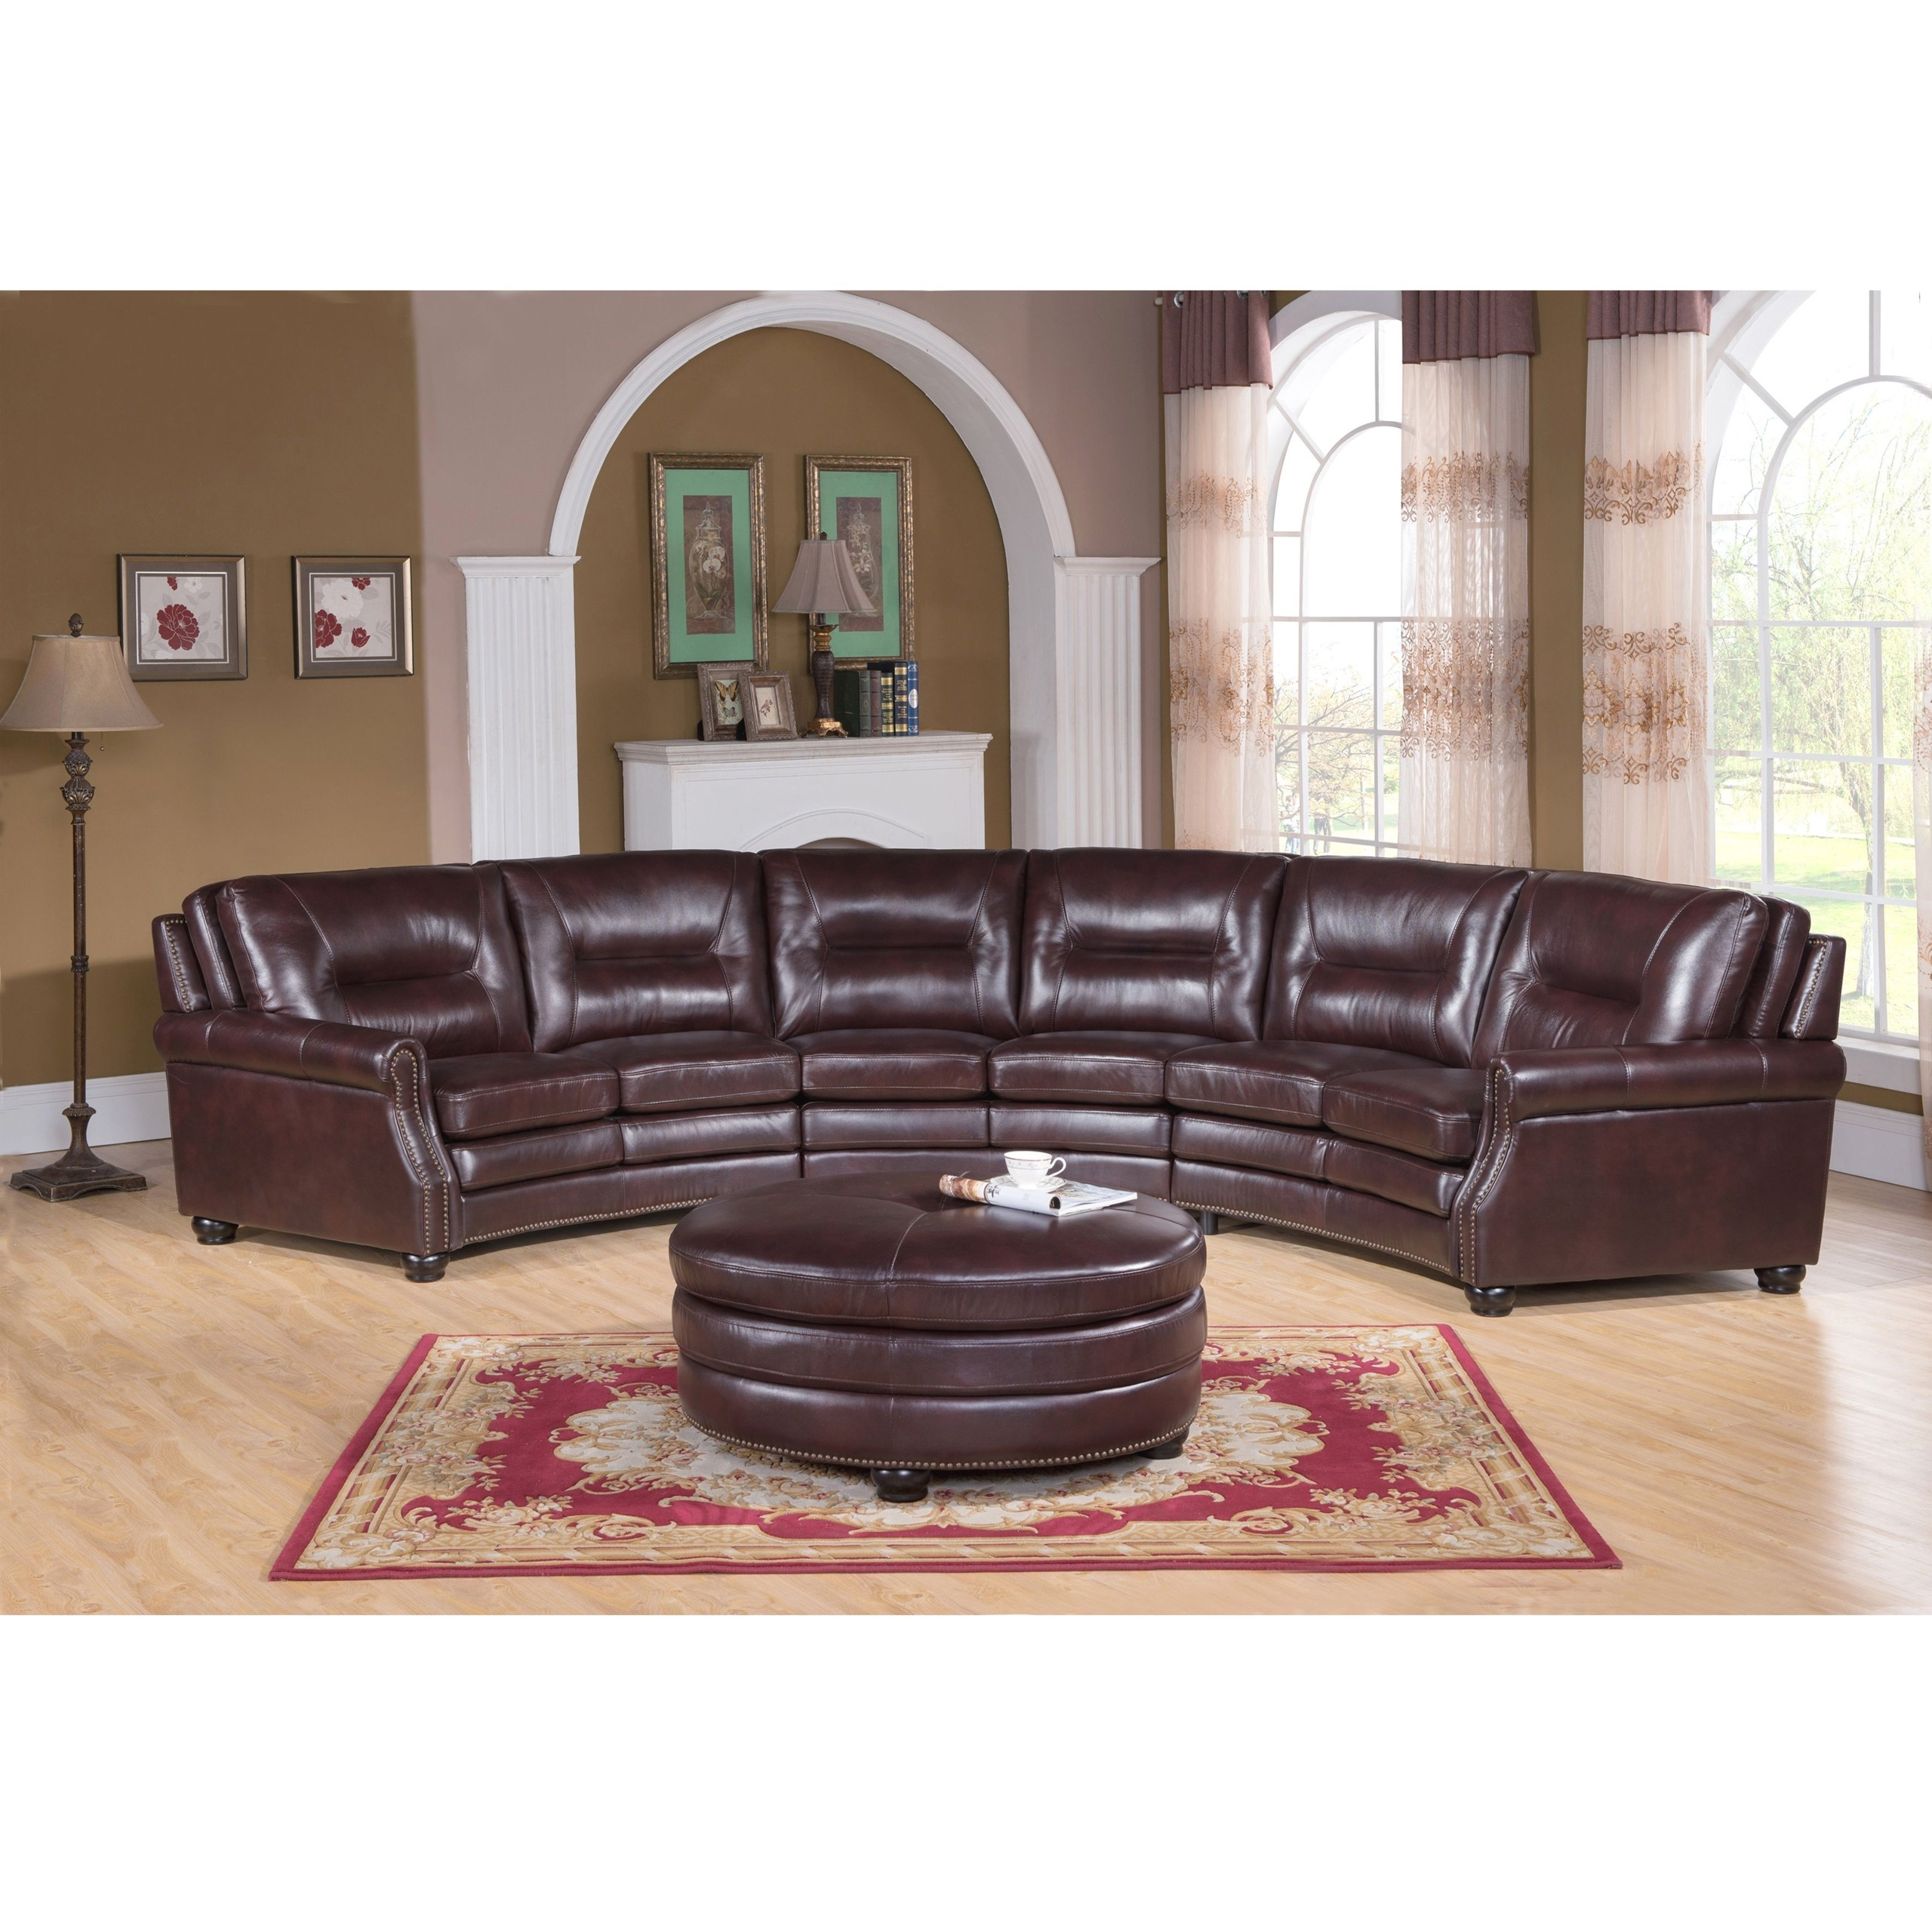 Merveilleux Curved Leather Sectional Sofa 3